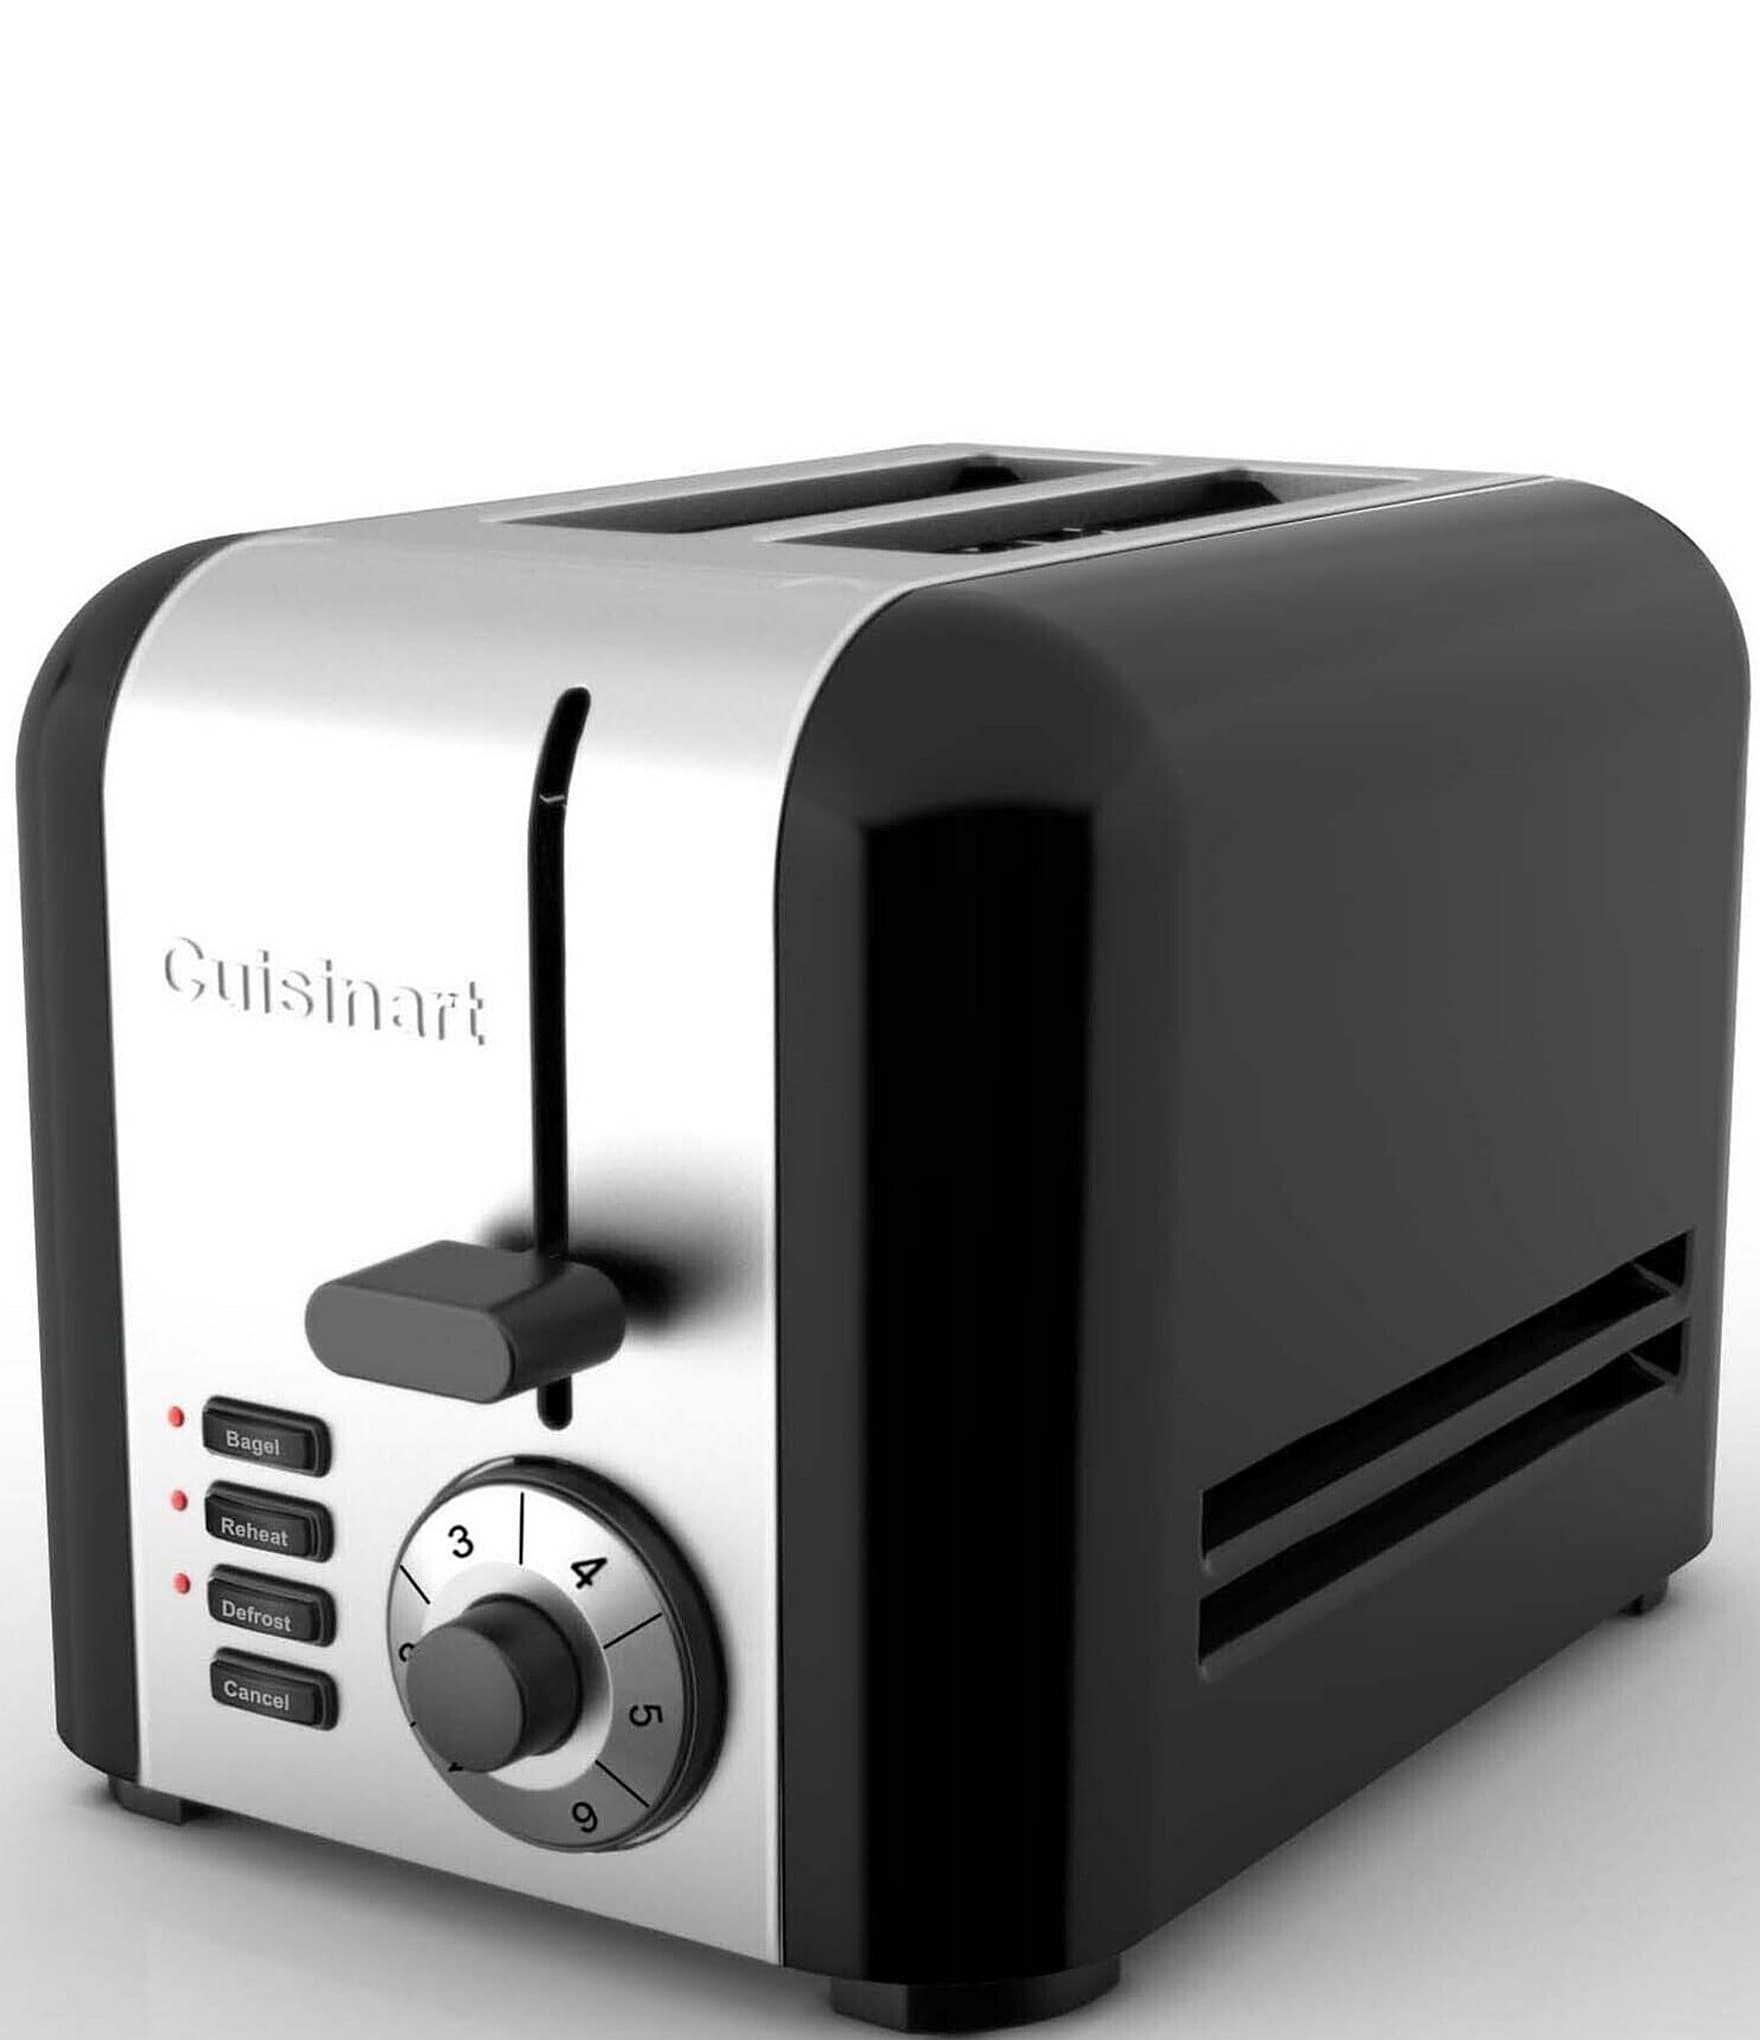 Home Kitchen Small Appliances Toasters & Ovens